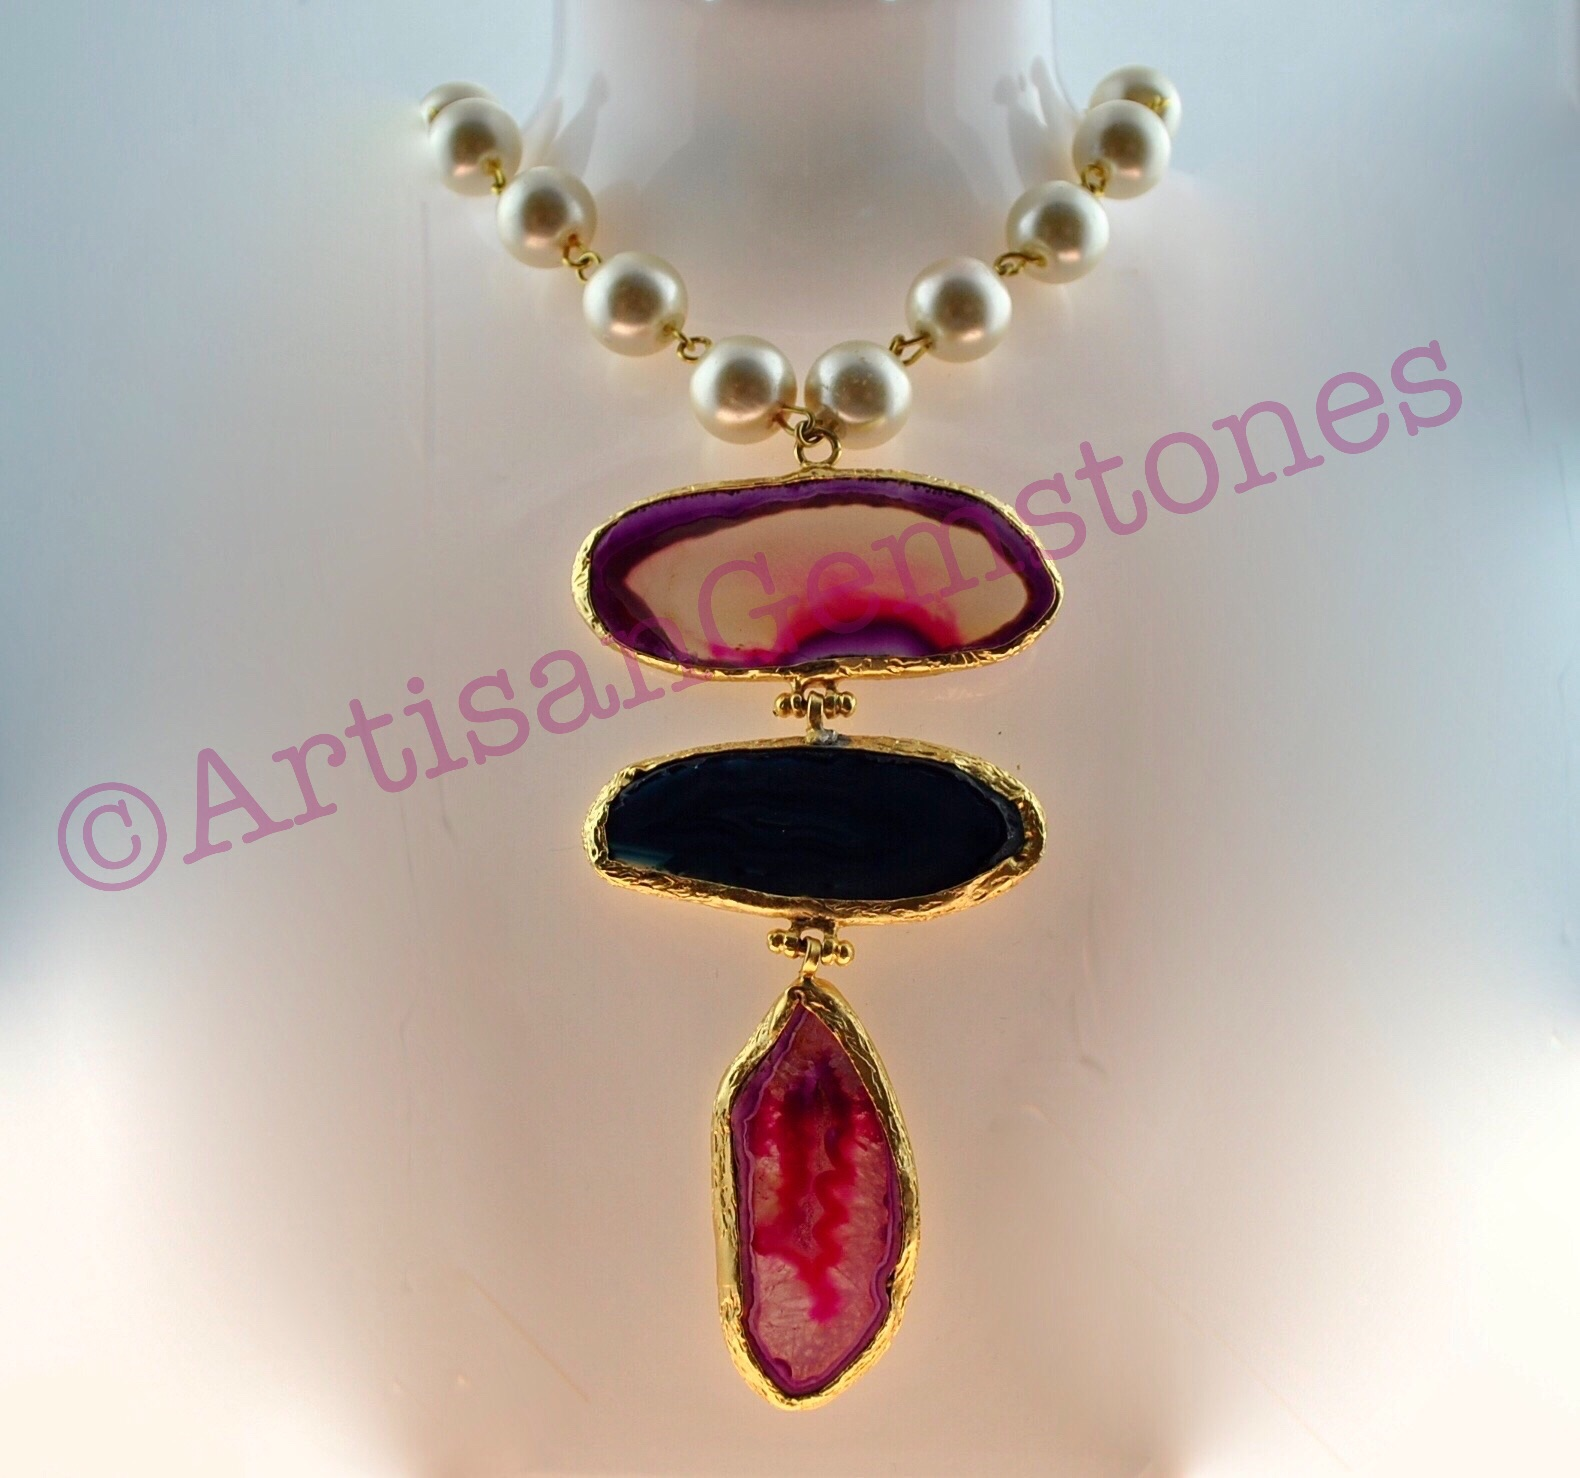 Pearl String and Agate Necklace 22k Gold vermeil